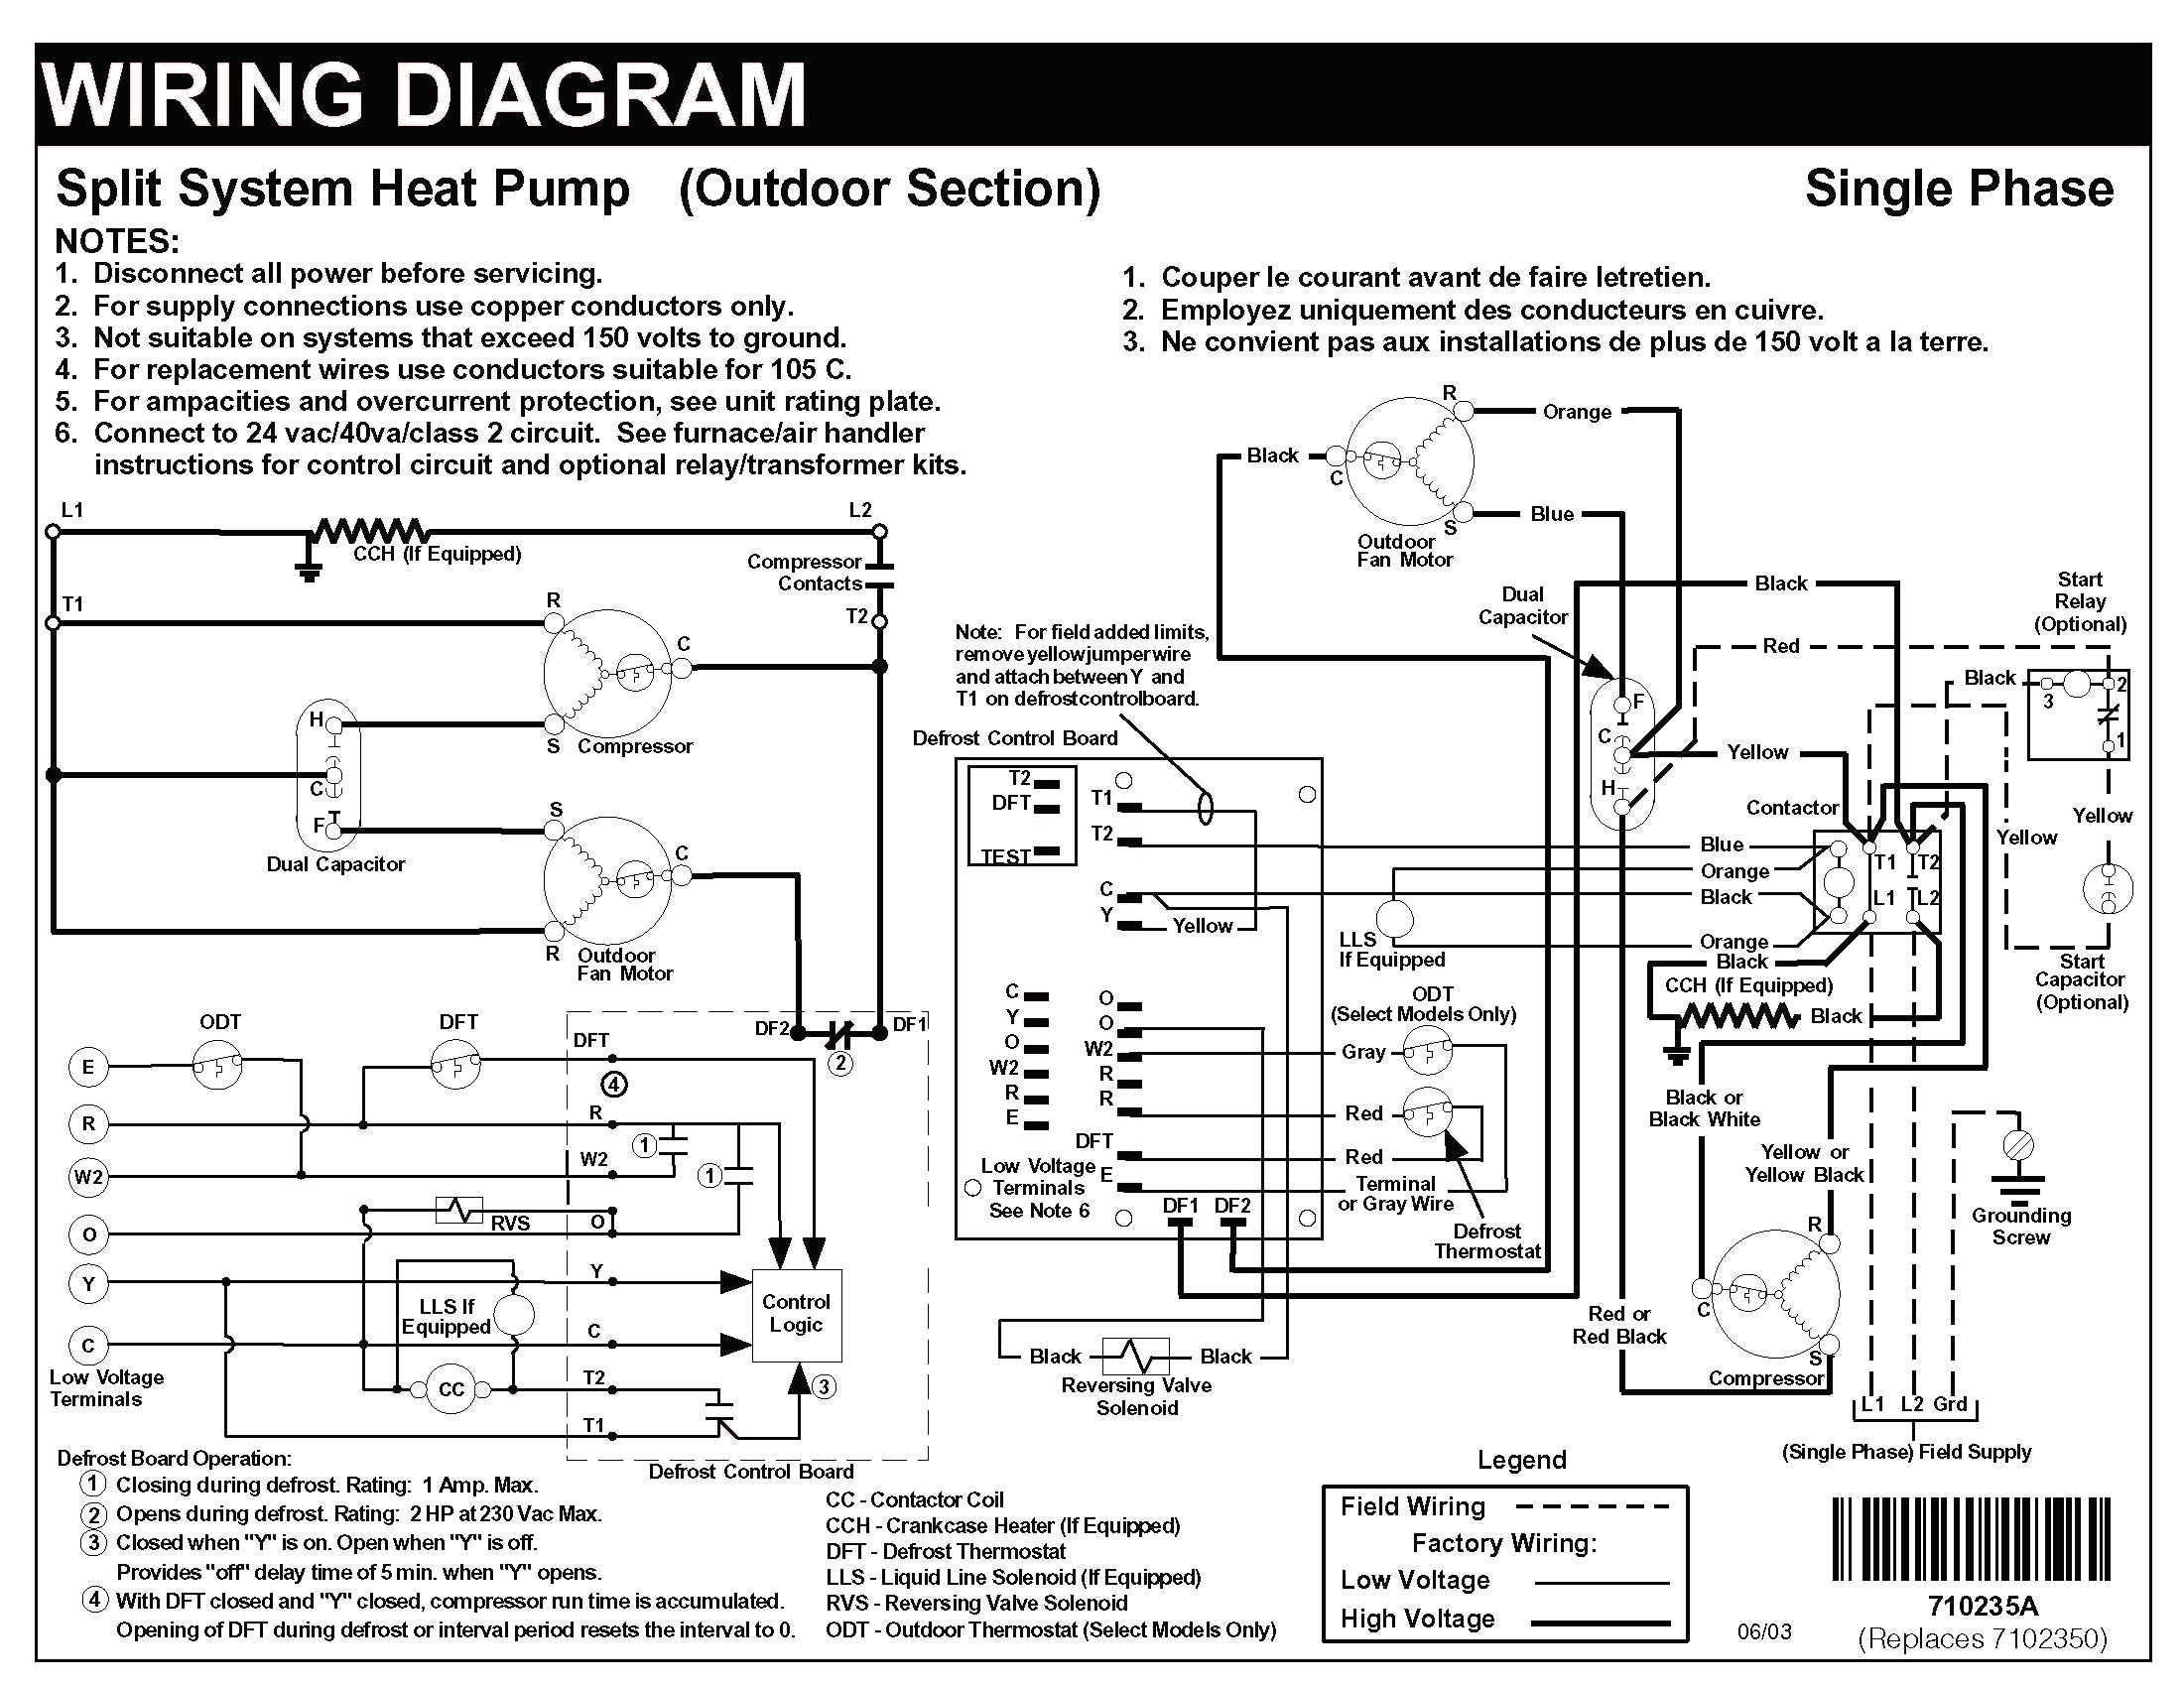 carrier heat pump low voltage wiring diagram Download-Wiring Diagram Hvac thermostat Fresh Nest thermostat Wiring Diagram Heat Pump Elegant Famous Carrier Heat 9-l